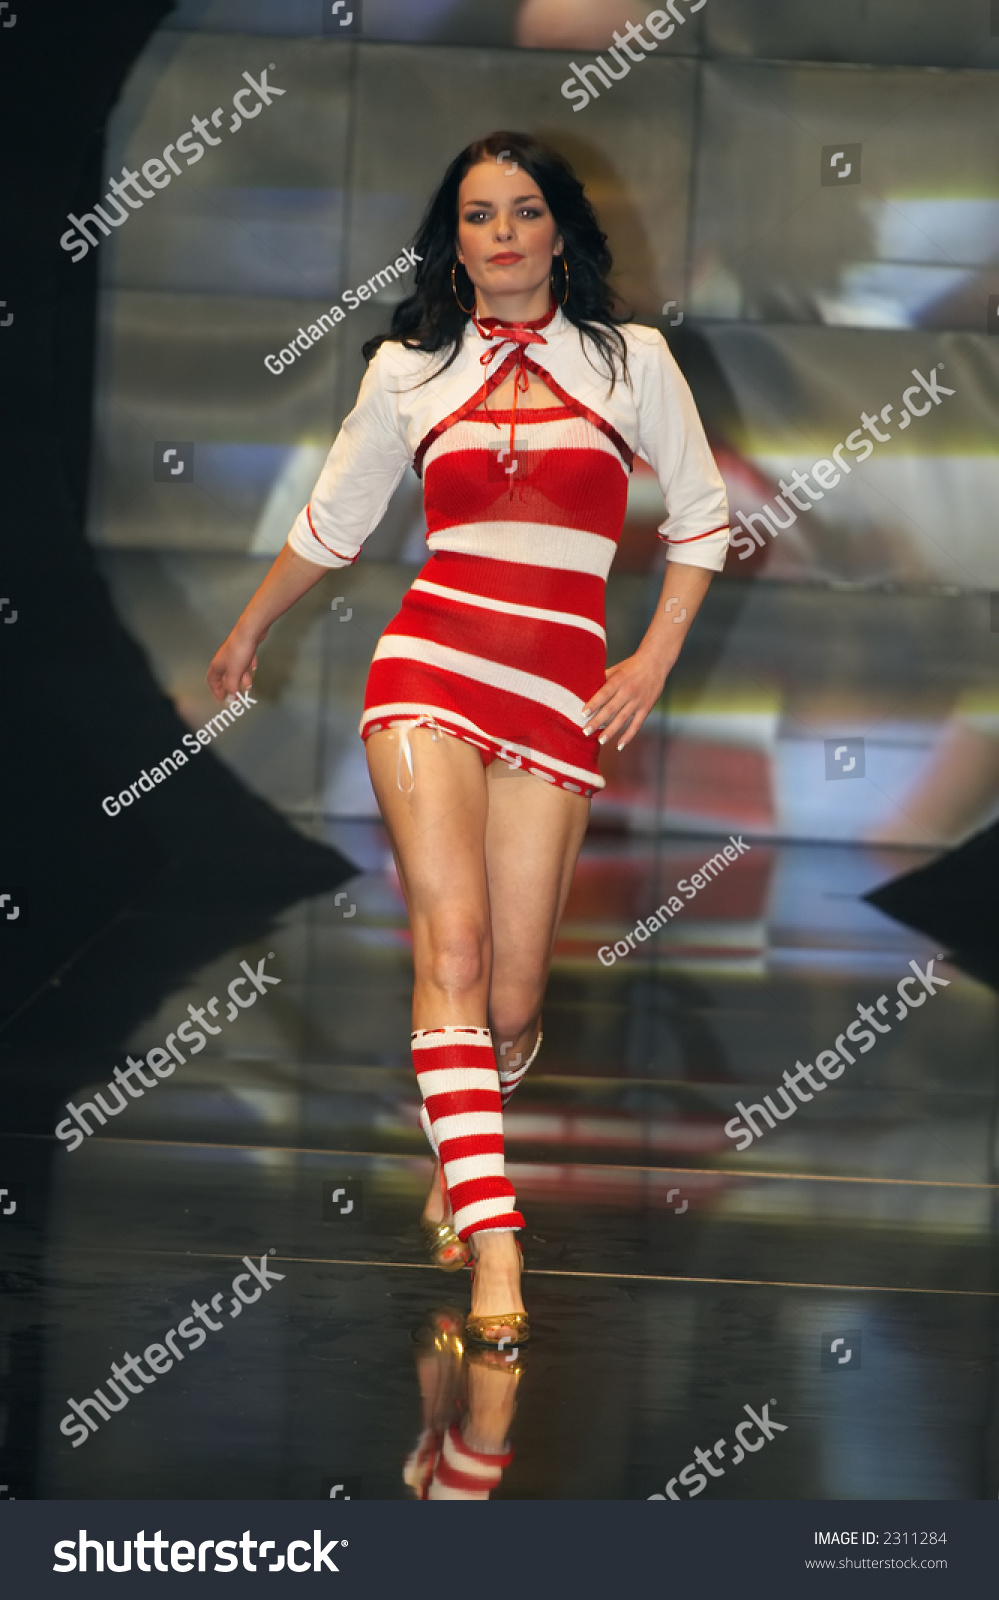 Fashion Woman Walking On Stairs Stock Photo - Image of ... |Fashion Model Walking